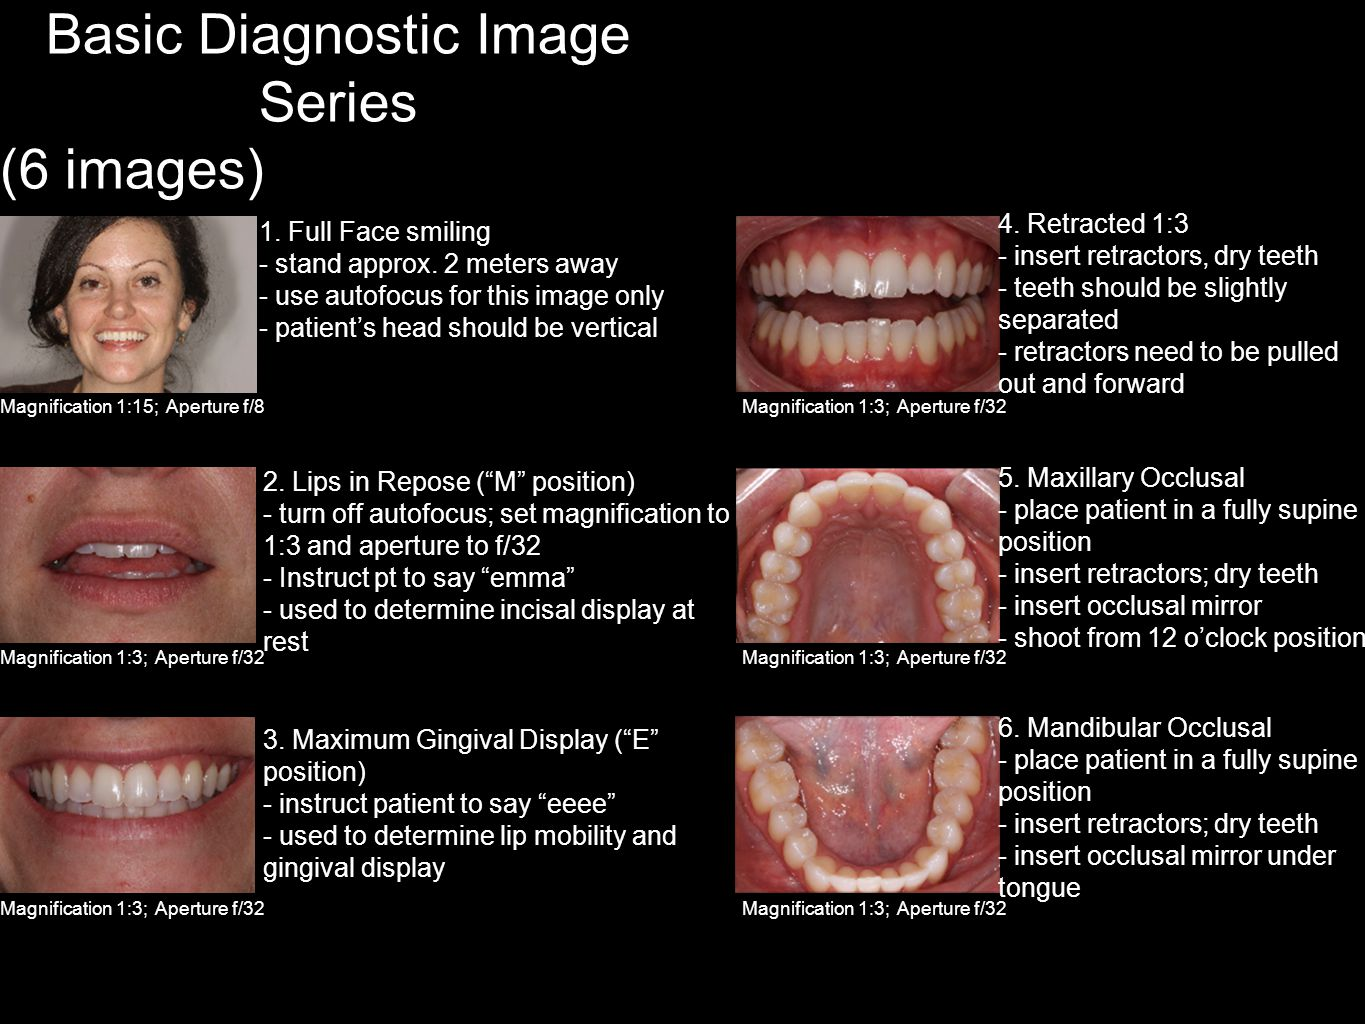 Basic Diagnostic Image Series